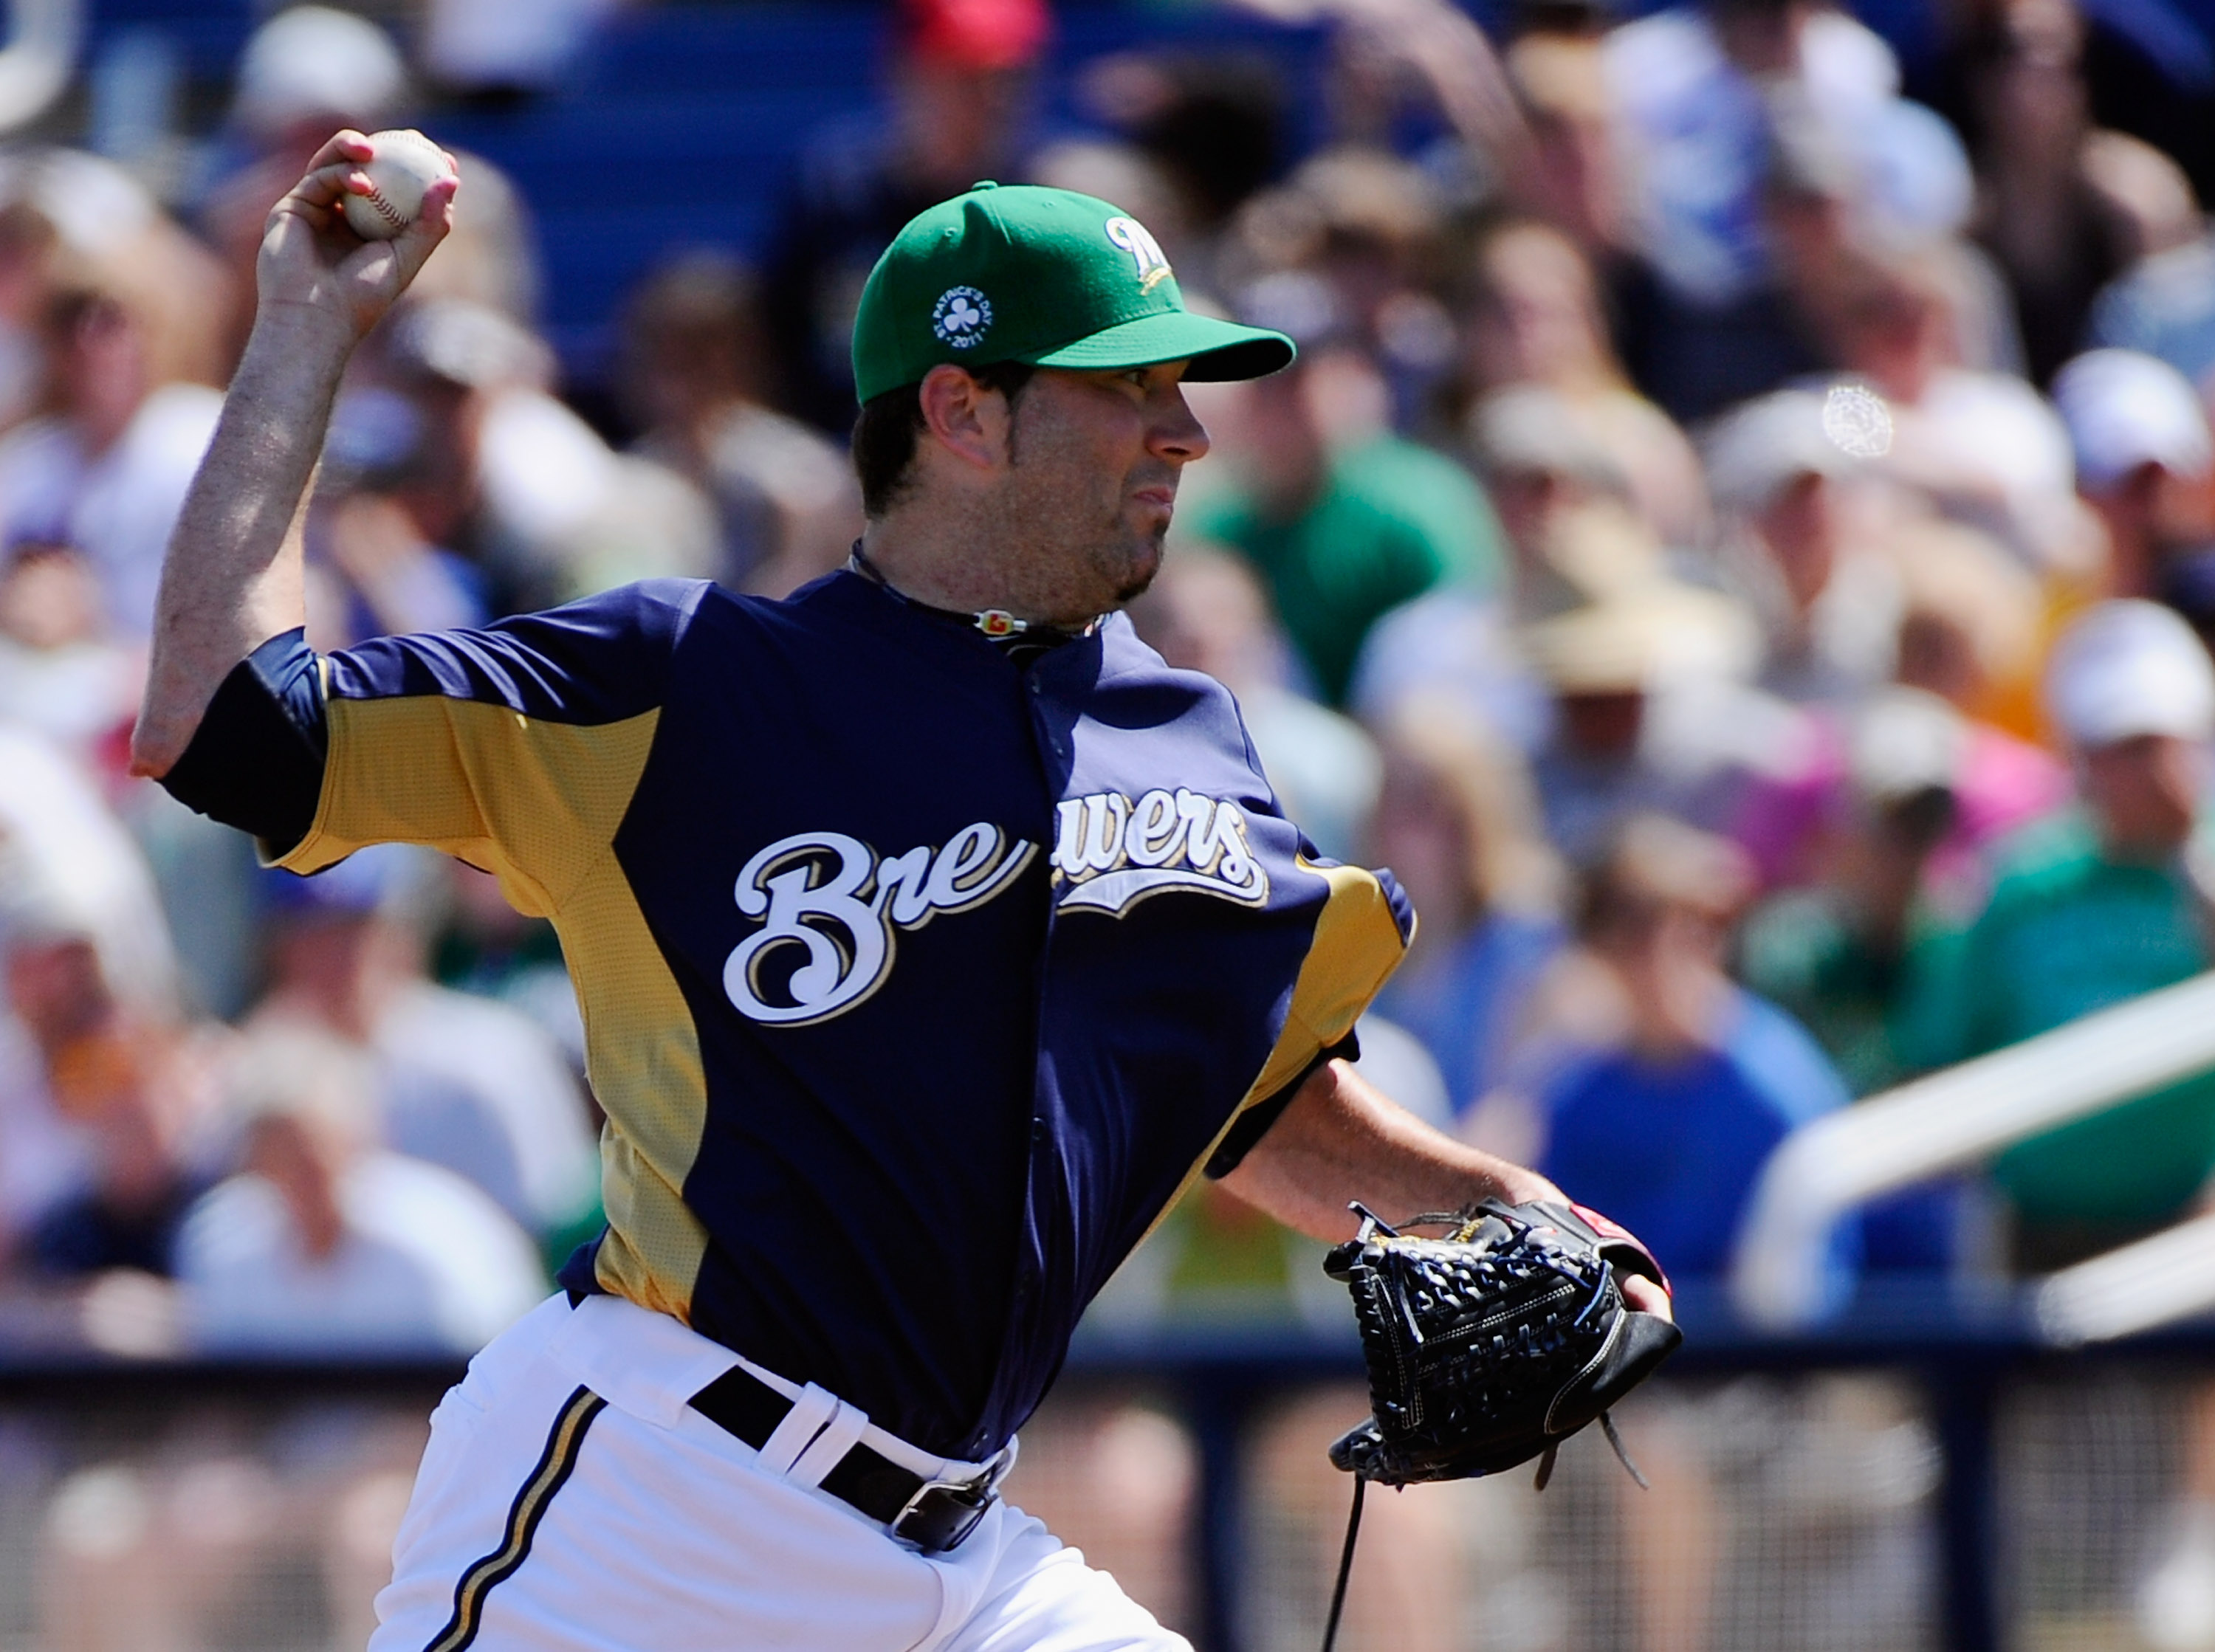 PHOENIX, AZ - MARCH 17:  Pitcher Shaun Marcum #18 of the Milwaukee Brewers throws a pitch against the Chicago White Sox during the first inning of the spring training game at Maryvale Baseball Park on March 17, 2011 in Phoenix, Arizona.  (Photo by Kevork